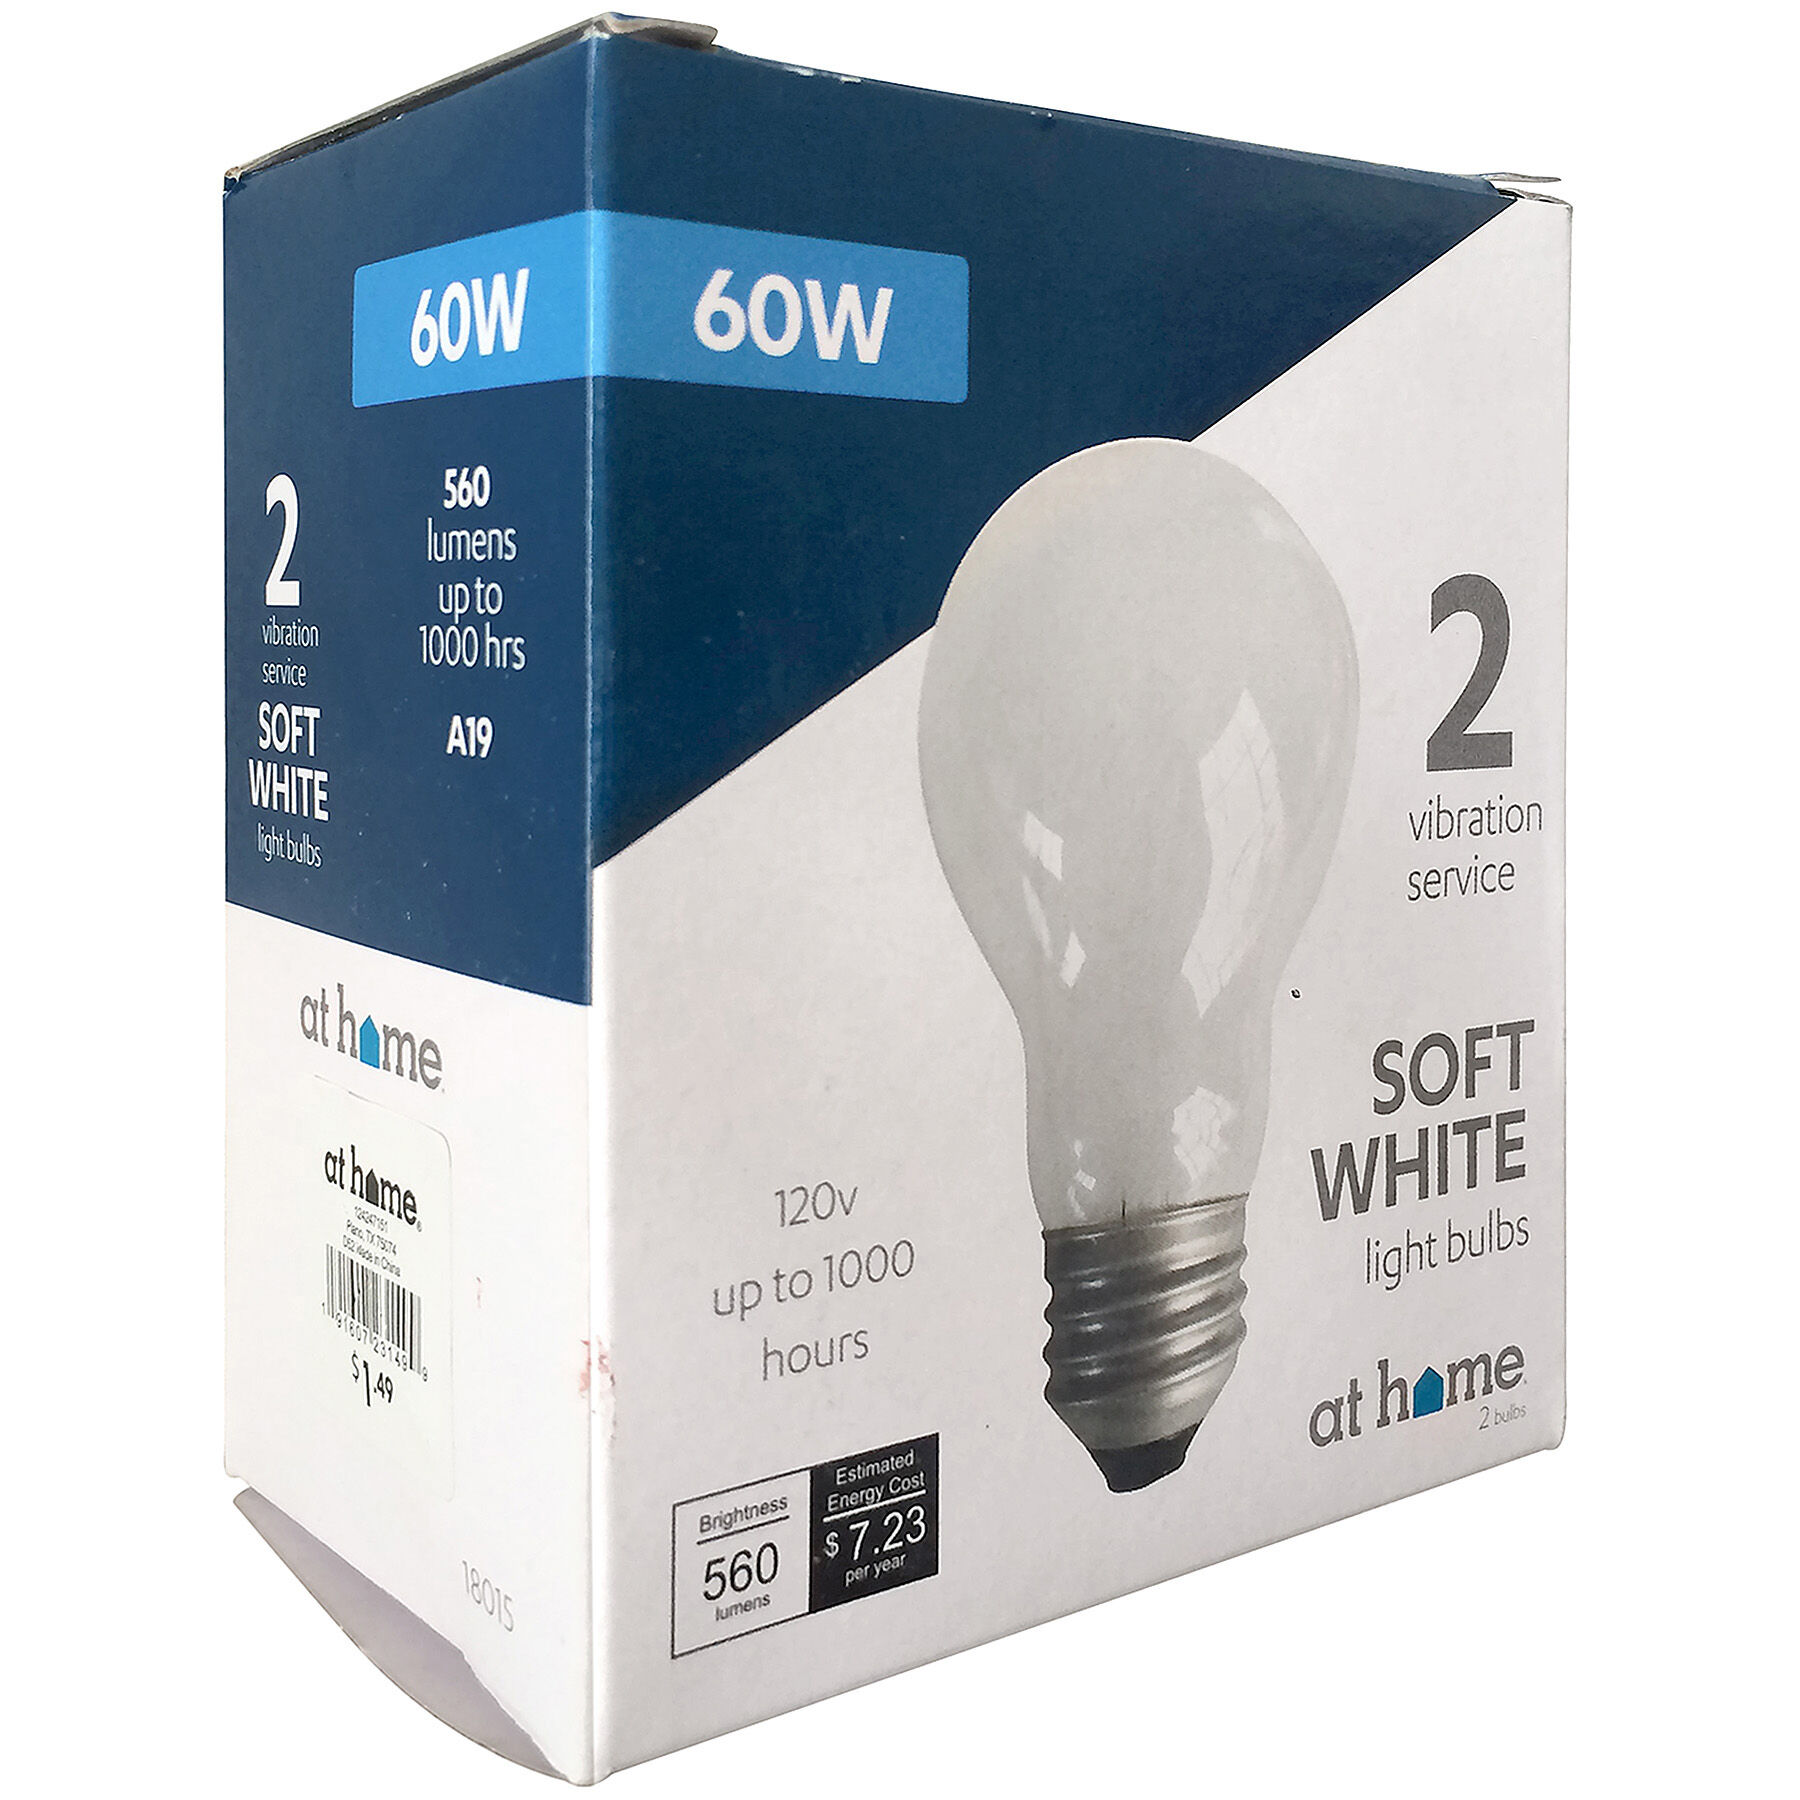 60w Light Bulb Soft White Light Bulb 60w 2 Pack